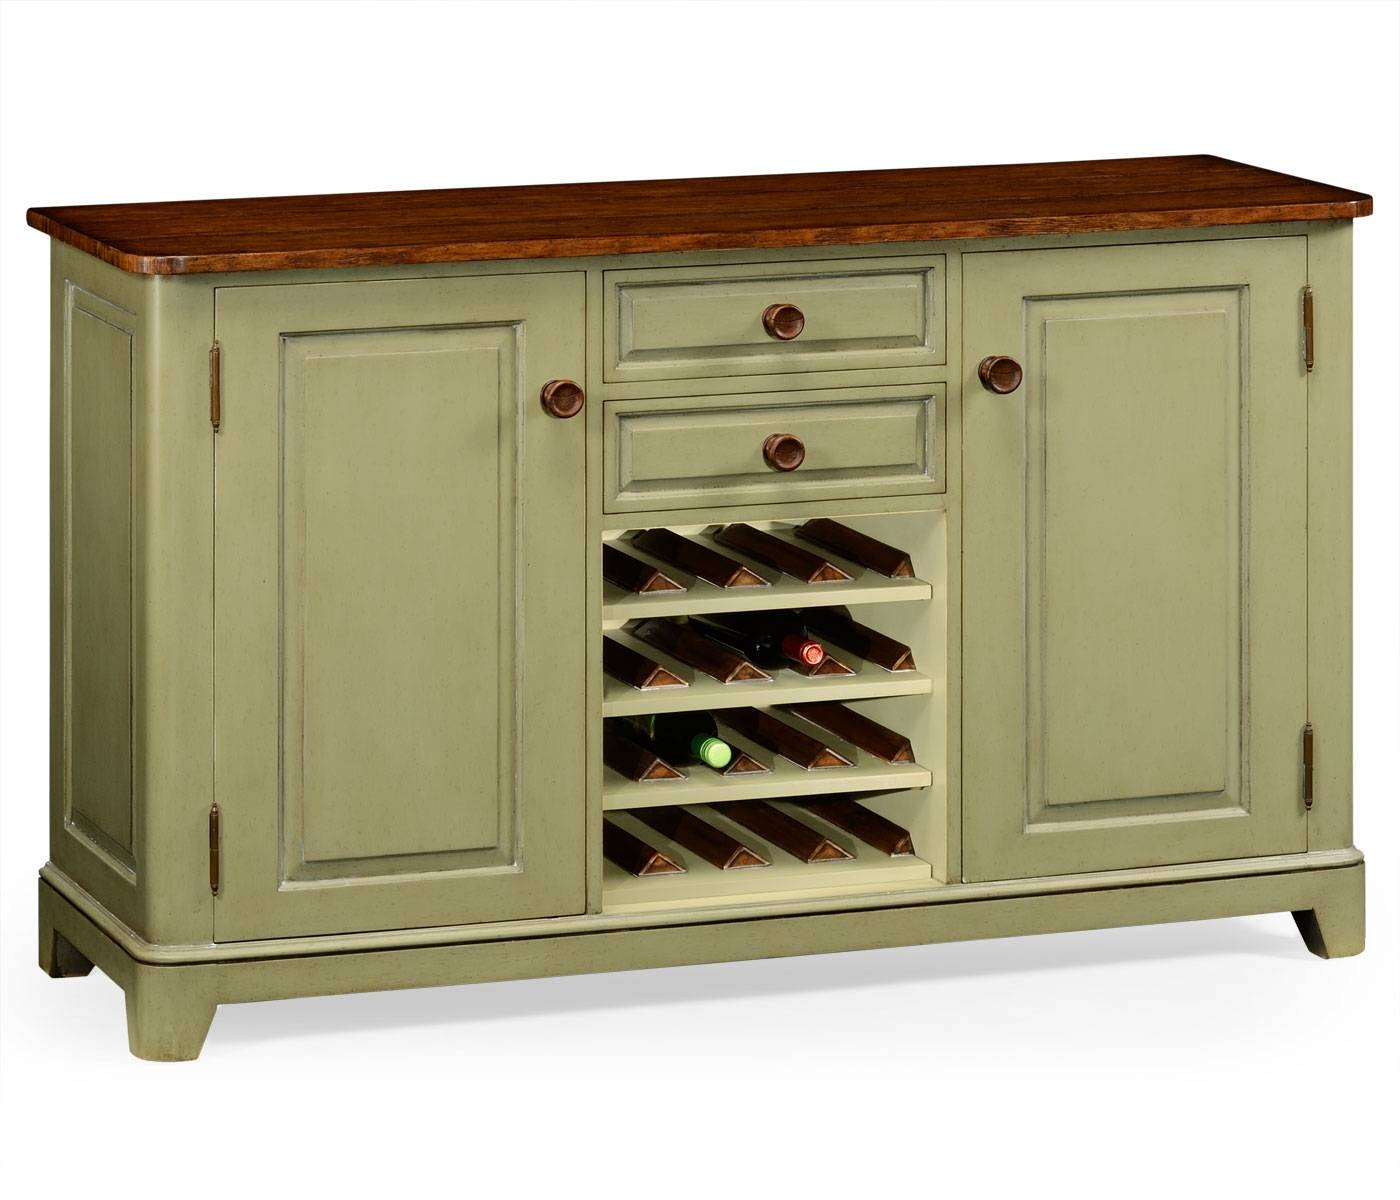 Things To Know About Sideboard With Wine Racks - Bonnie Is Good with regard to Sideboards With Wine Racks (Image 29 of 30)